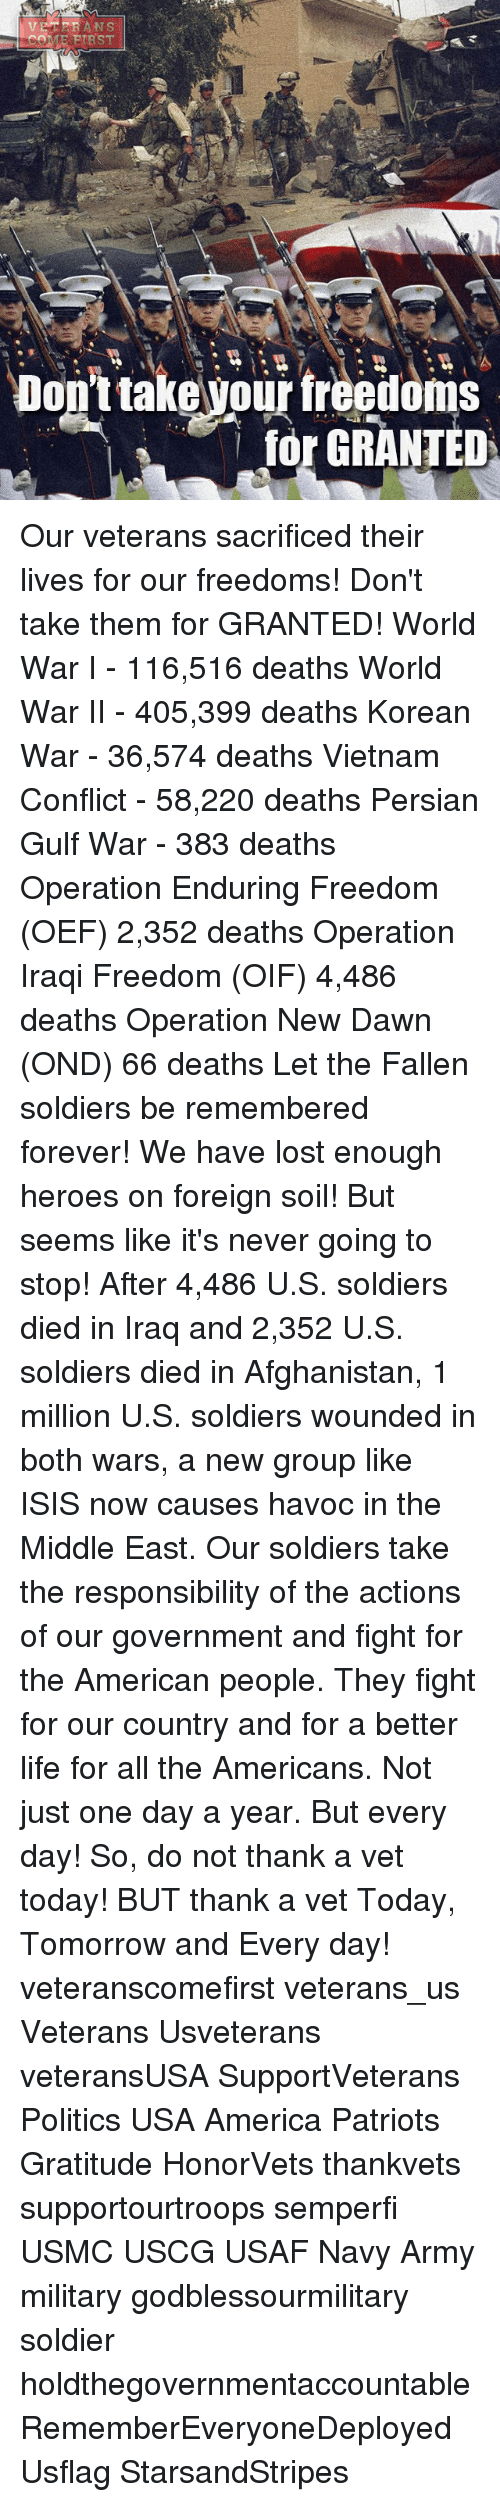 America, Isis, and Life: ANS  TER  OME RTRST  Don't take your freedoms  for GRANTED Our veterans sacrificed their lives for our freedoms! Don't take them for GRANTED! World War I - 116,516 deaths World War II - 405,399 deaths Korean War - 36,574 deaths Vietnam Conflict - 58,220 deaths Persian Gulf War - 383 deaths Operation Enduring Freedom (OEF) 2,352 deaths Operation Iraqi Freedom (OIF) 4,486 deaths Operation New Dawn (OND) 66 deaths Let the Fallen soldiers be remembered forever! We have lost enough heroes on foreign soil! But seems like it's never going to stop! After 4,486 U.S. soldiers died in Iraq and 2,352 U.S. soldiers died in Afghanistan, 1 million U.S. soldiers wounded in both wars, a new group like ISIS now causes havoc in the Middle East. Our soldiers take the responsibility of the actions of our government and fight for the American people. They fight for our country and for a better life for all the Americans. Not just one day a year. But every day! So, do not thank a vet today! BUT thank a vet Today, Tomorrow and Every day! veteranscomefirst veterans_us Veterans Usveterans veteransUSA SupportVeterans Politics USA America Patriots Gratitude HonorVets thankvets supportourtroops semperfi USMC USCG USAF Navy Army military godblessourmilitary soldier holdthegovernmentaccountable RememberEveryoneDeployed Usflag StarsandStripes